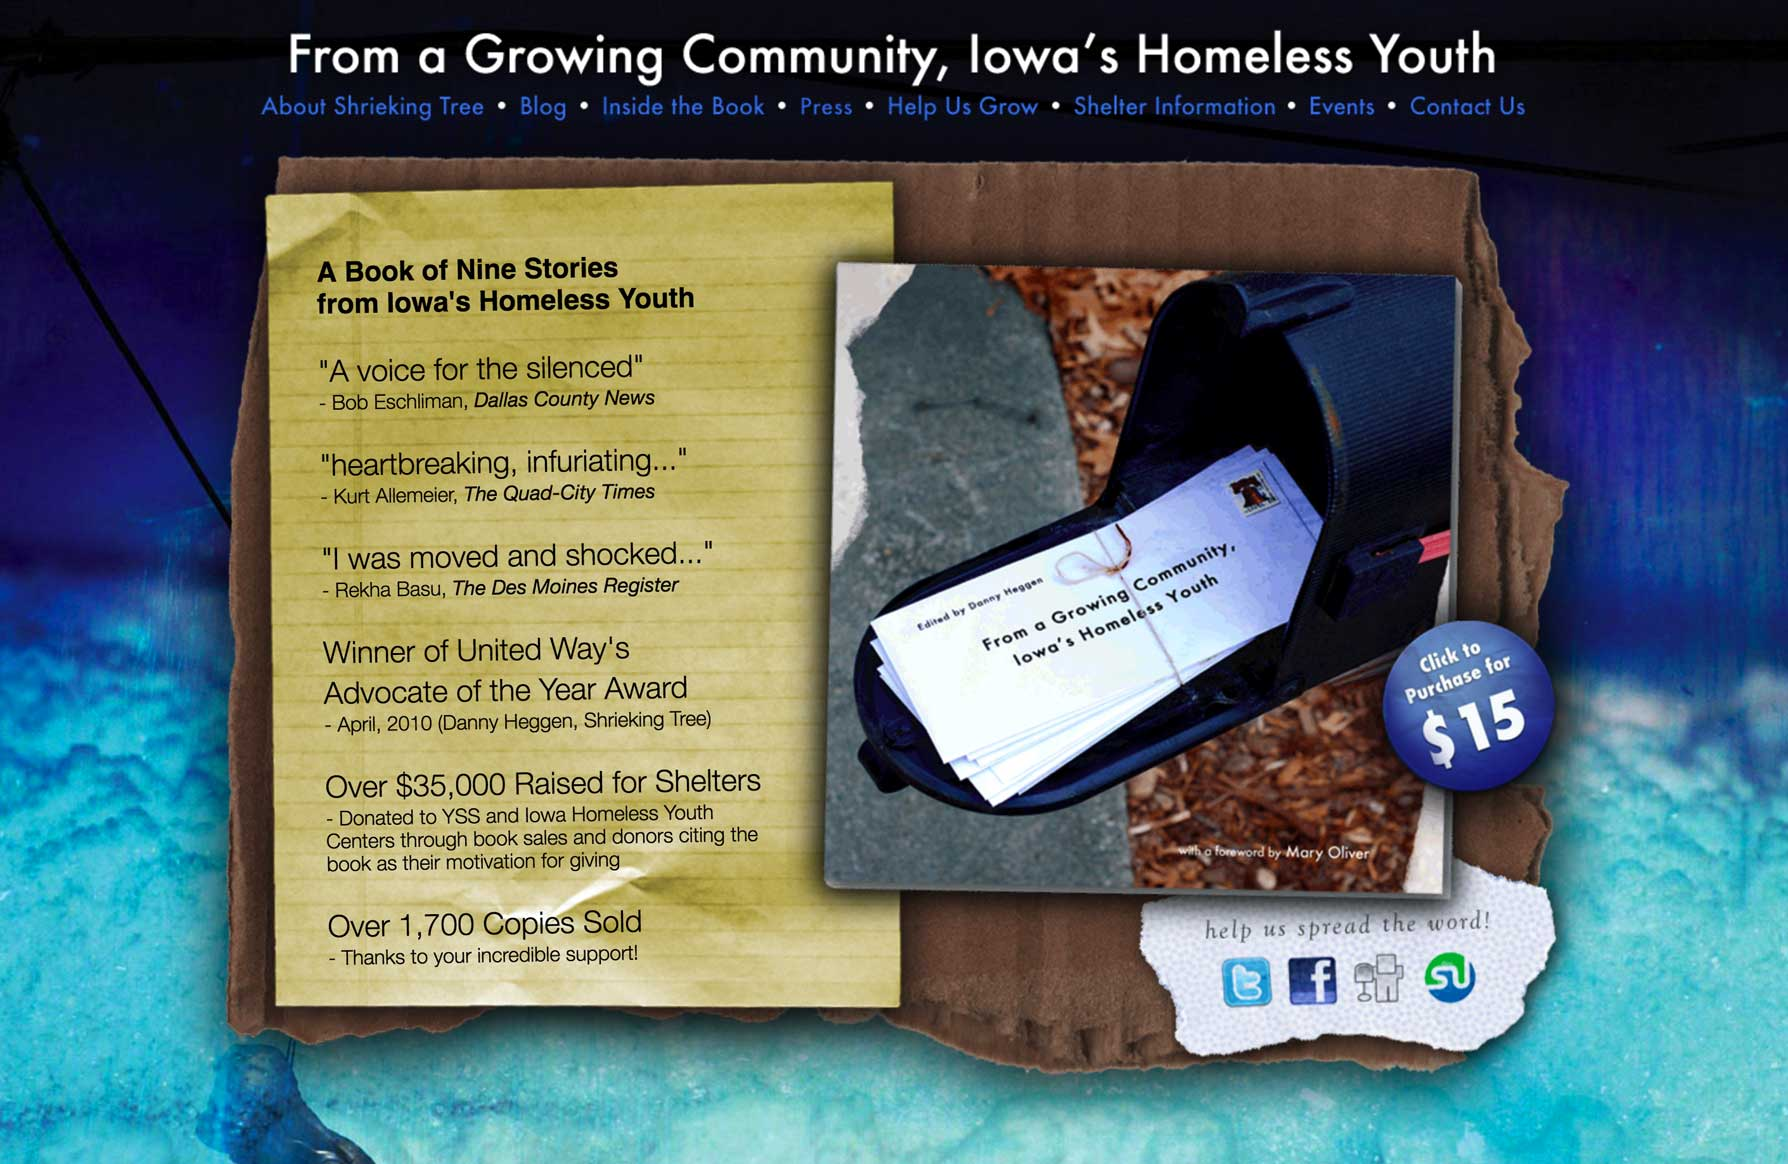 From a Growing Community, Iowa's Homeless Youth